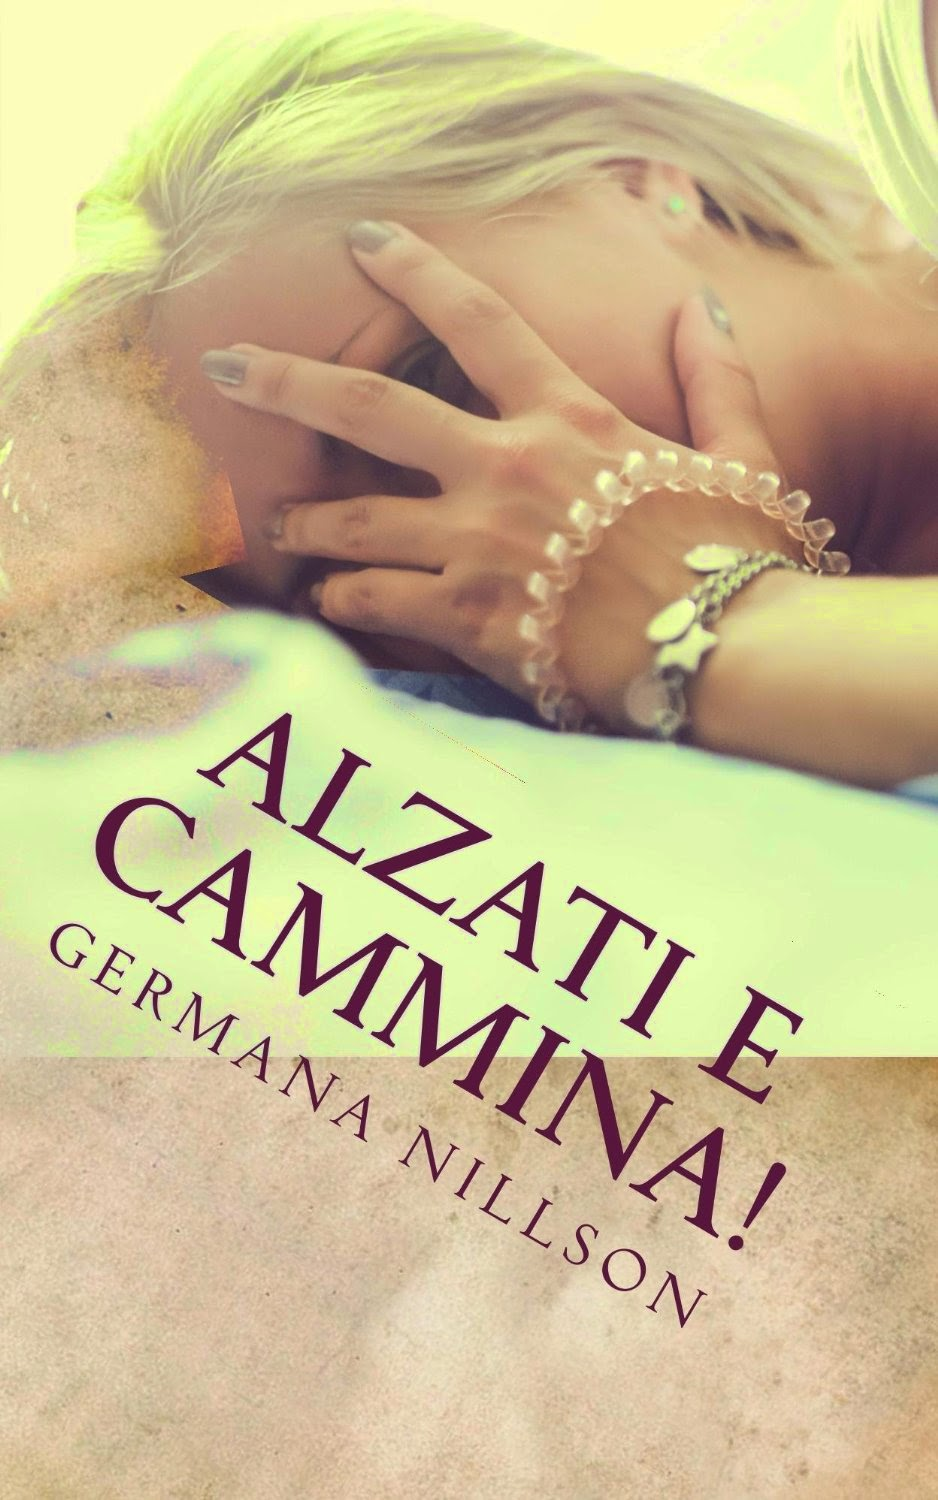 Alzati e cammina, di Germana Nillson